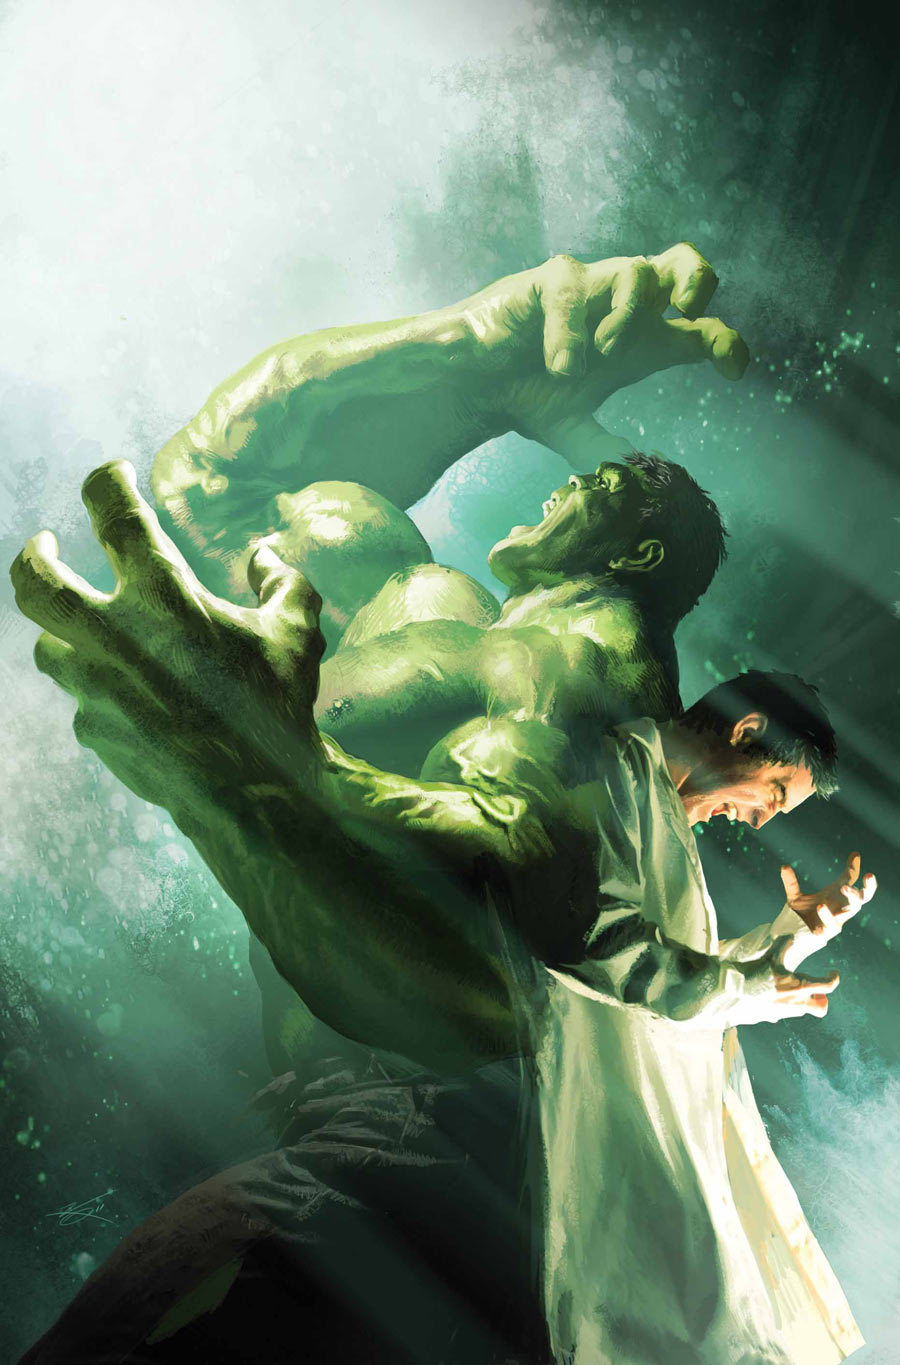 images of the incredible hulk